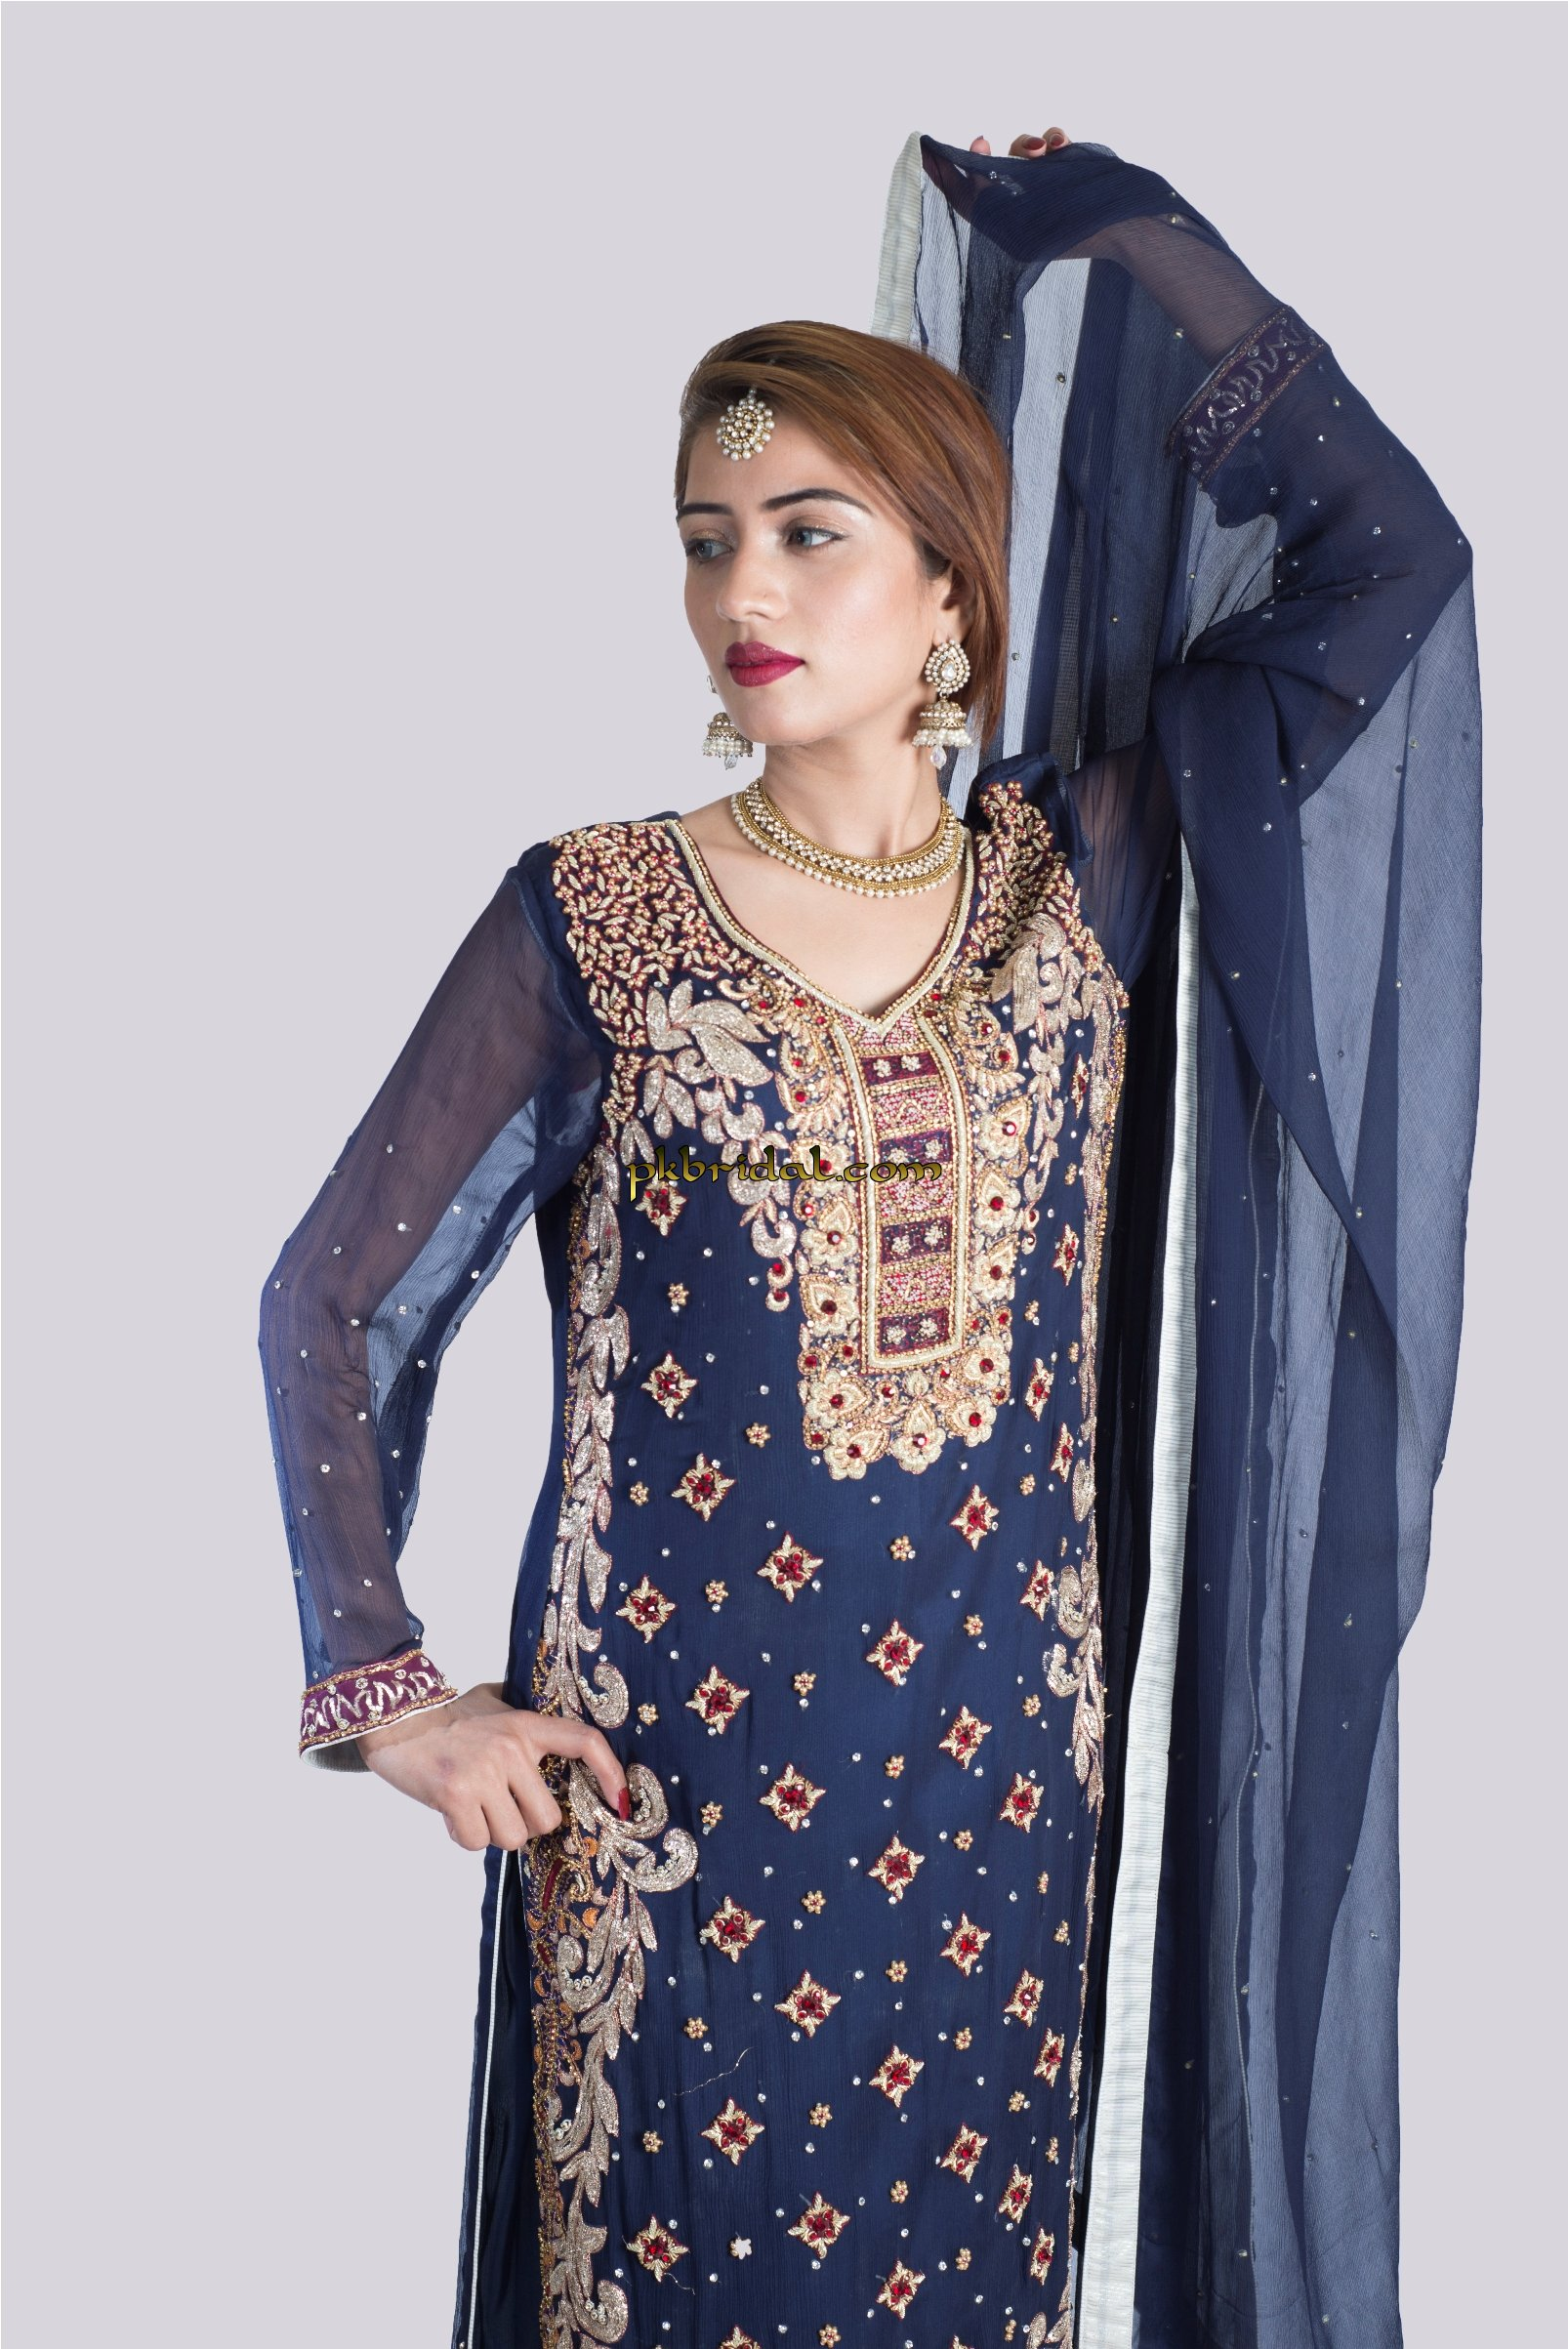 baari-hand-embroidered-dresses-20